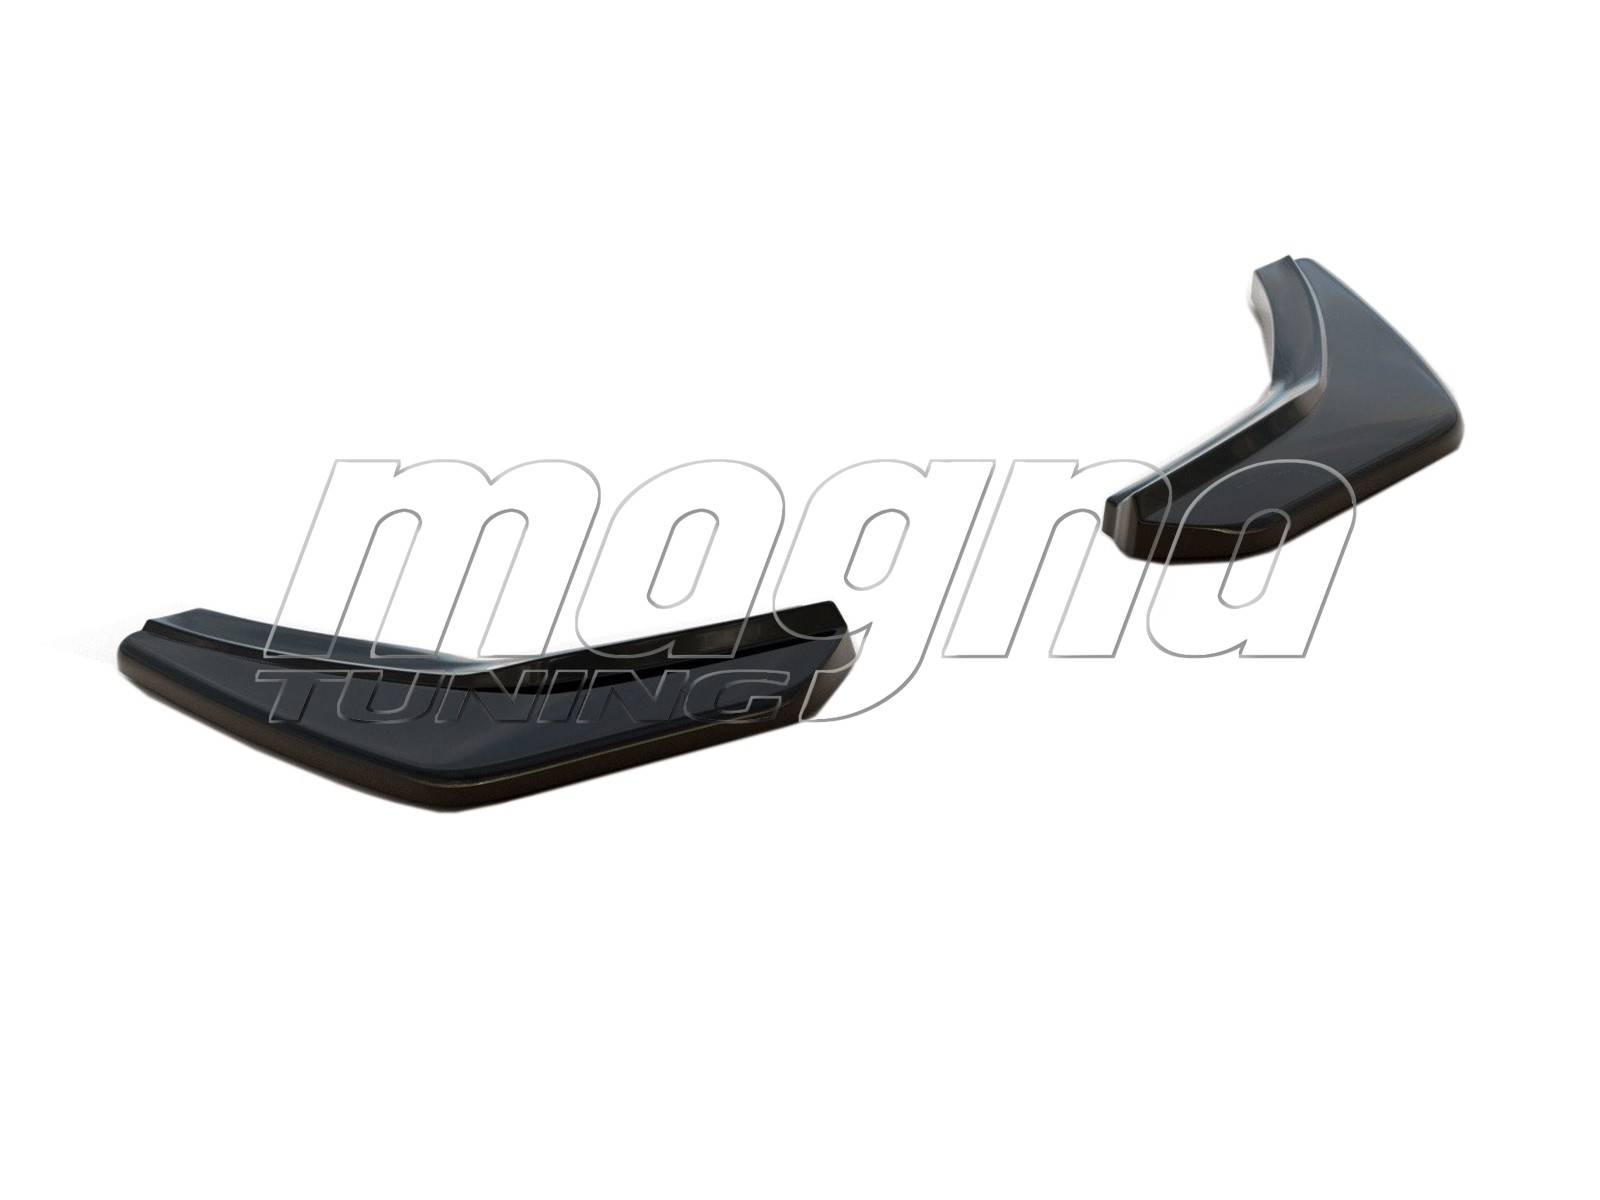 VW Golf 7 GTI M-Style2 Rear Bumper Extension